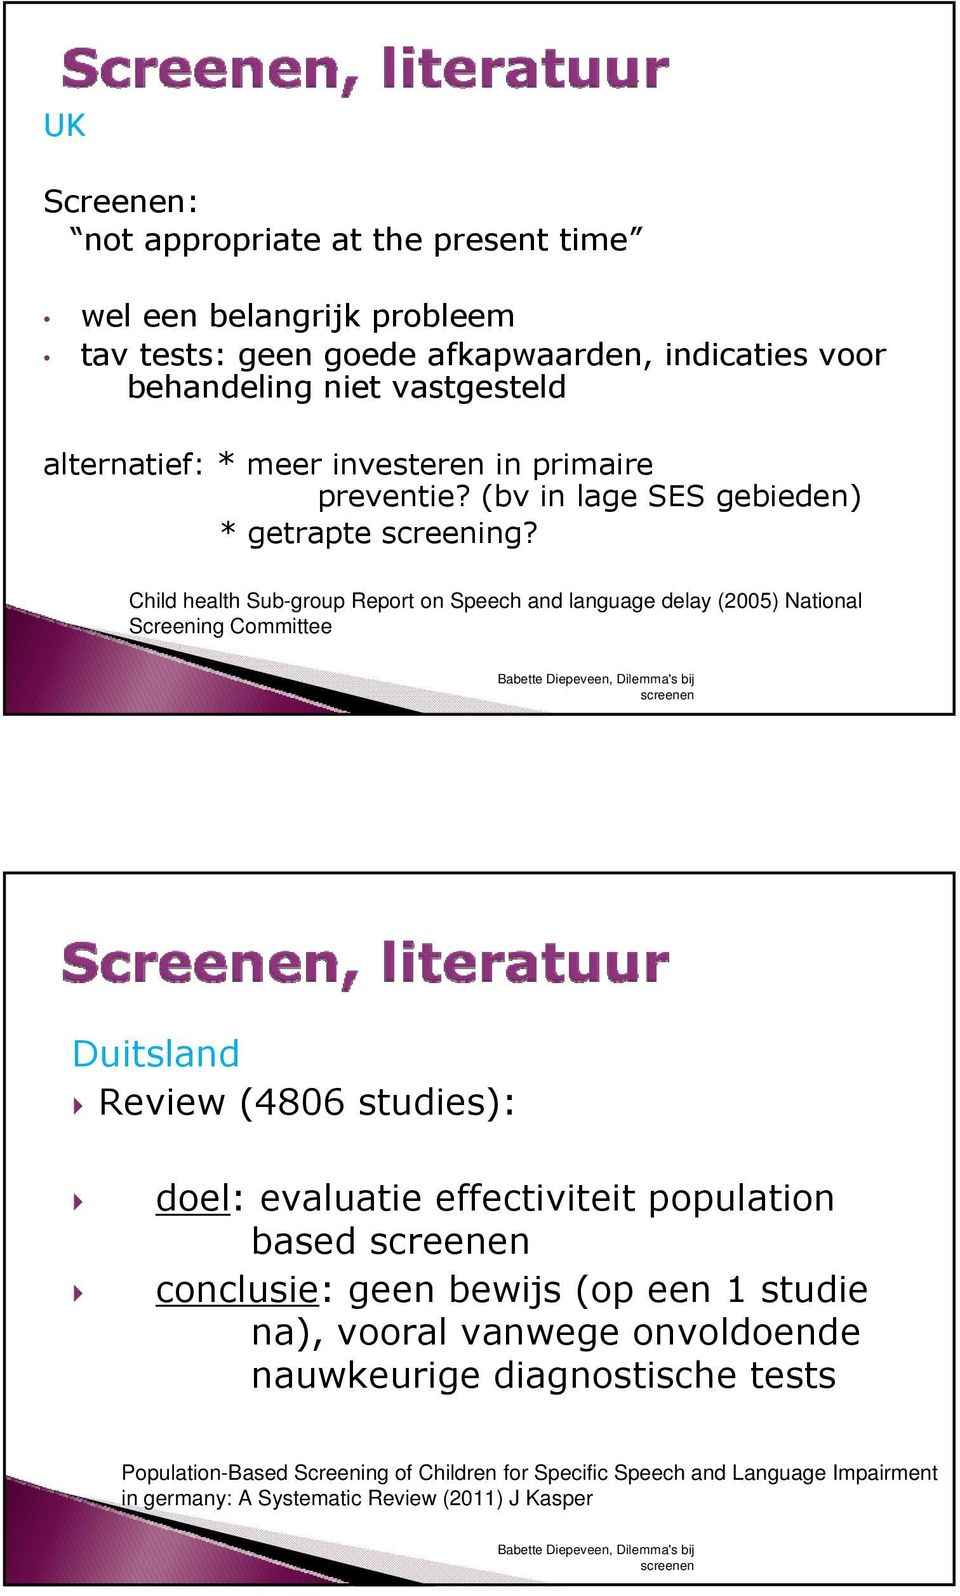 Child health Sub-group Report on Speech and language delay (2005) National Screening Committee Duitsland Review (4806 studies): doel: evaluatie effectiviteit